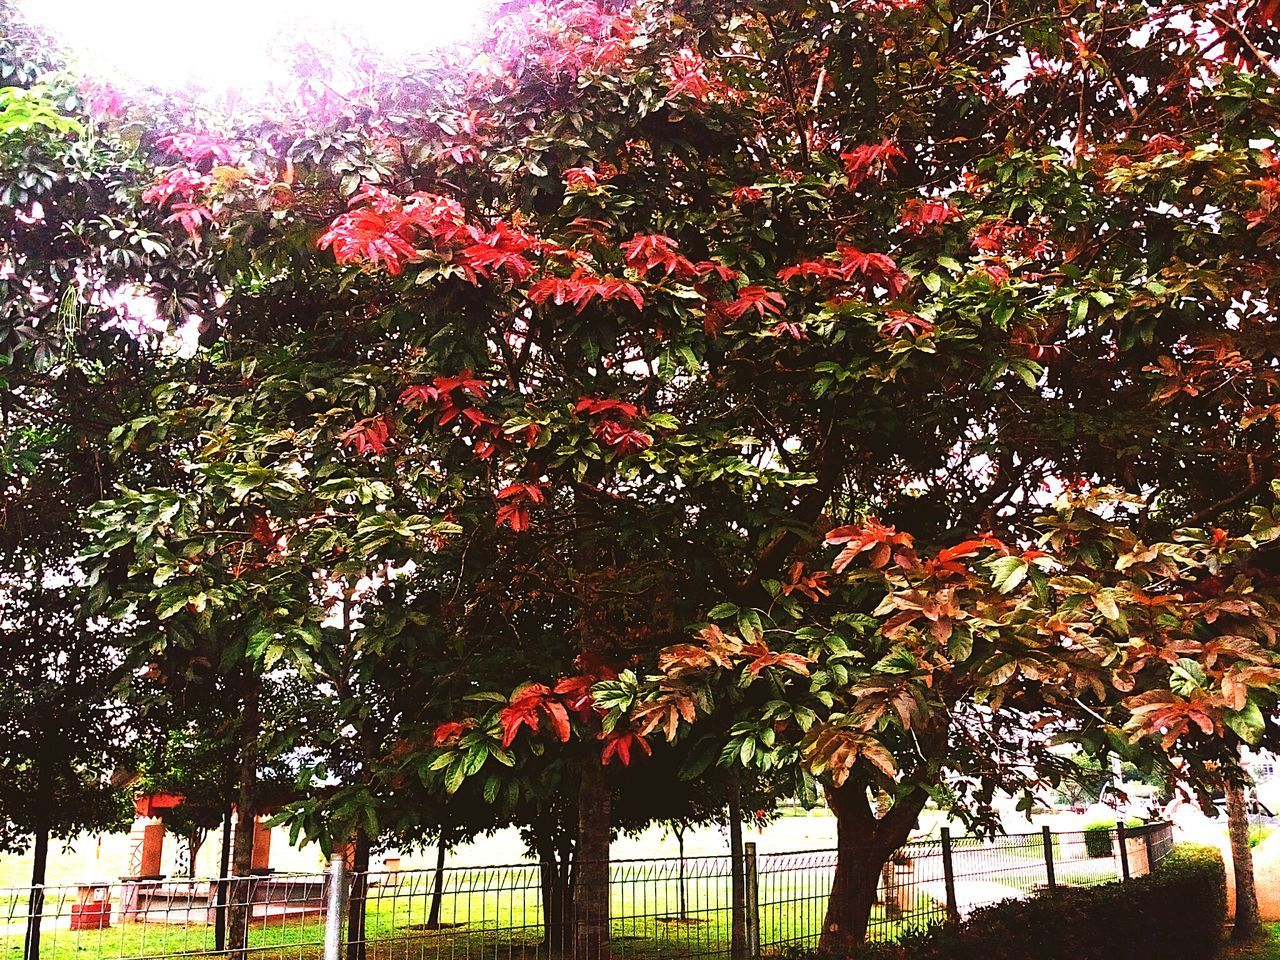 Colours leaves trees Tree Growth ParkNature Outdoors Beauty In Nature Sky Multicolor Leaves Red Maroon Green Shades